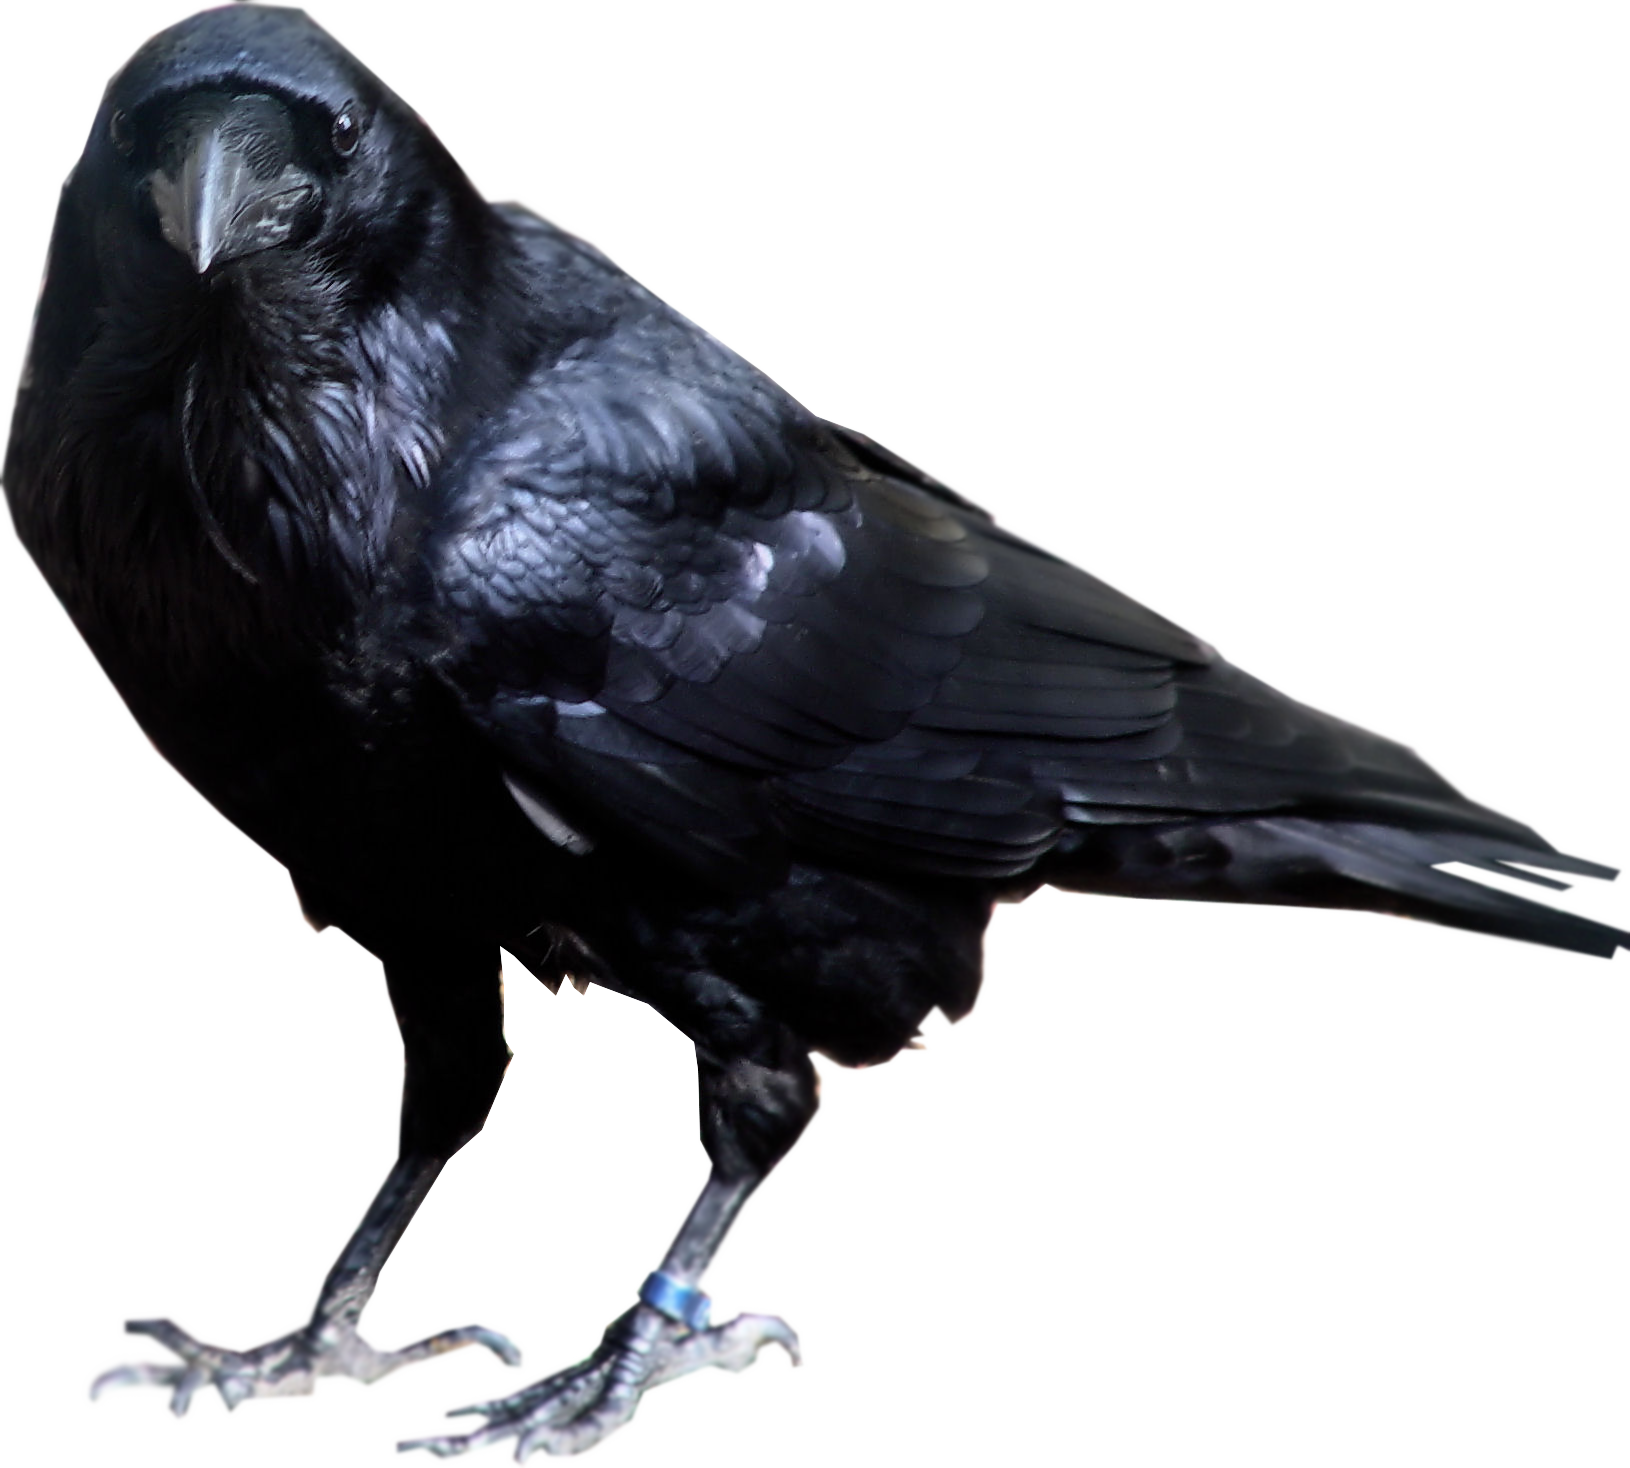 Raven (cool pics of heroes I like from artists). I'll make